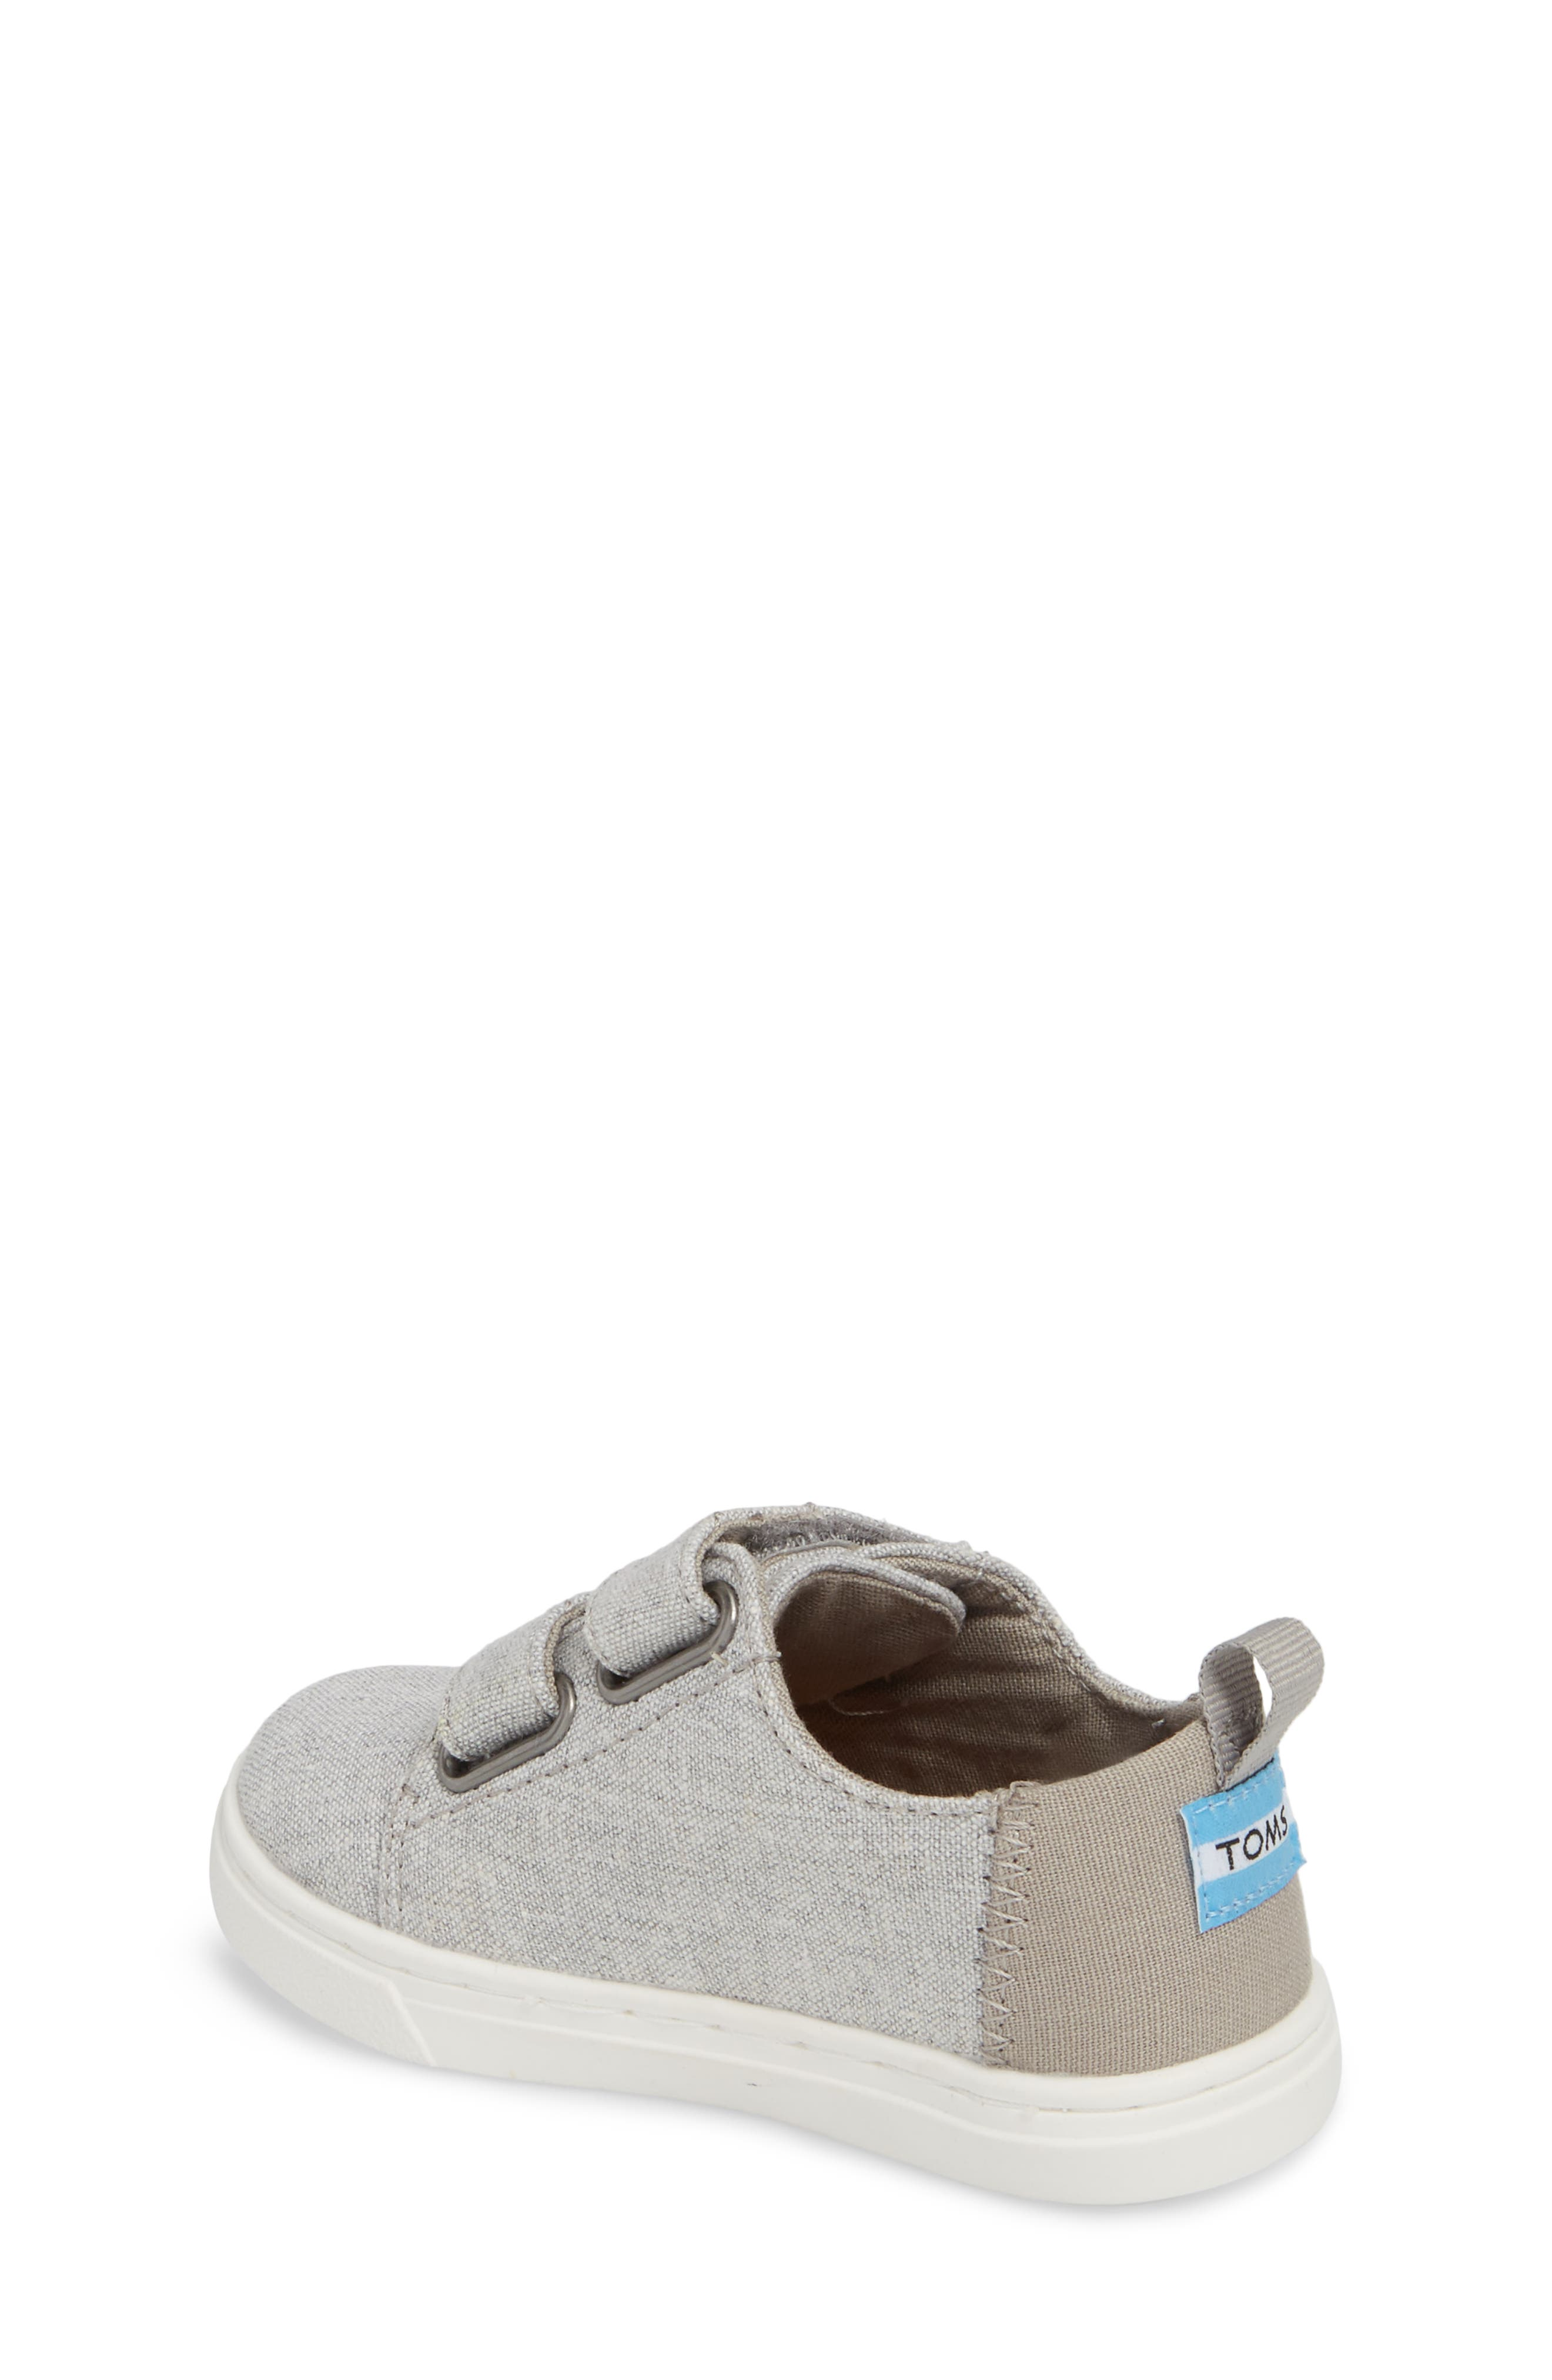 Lenny Sneaker,                             Alternate thumbnail 2, color,                             DRIZZLE GREY CHAMBRAY